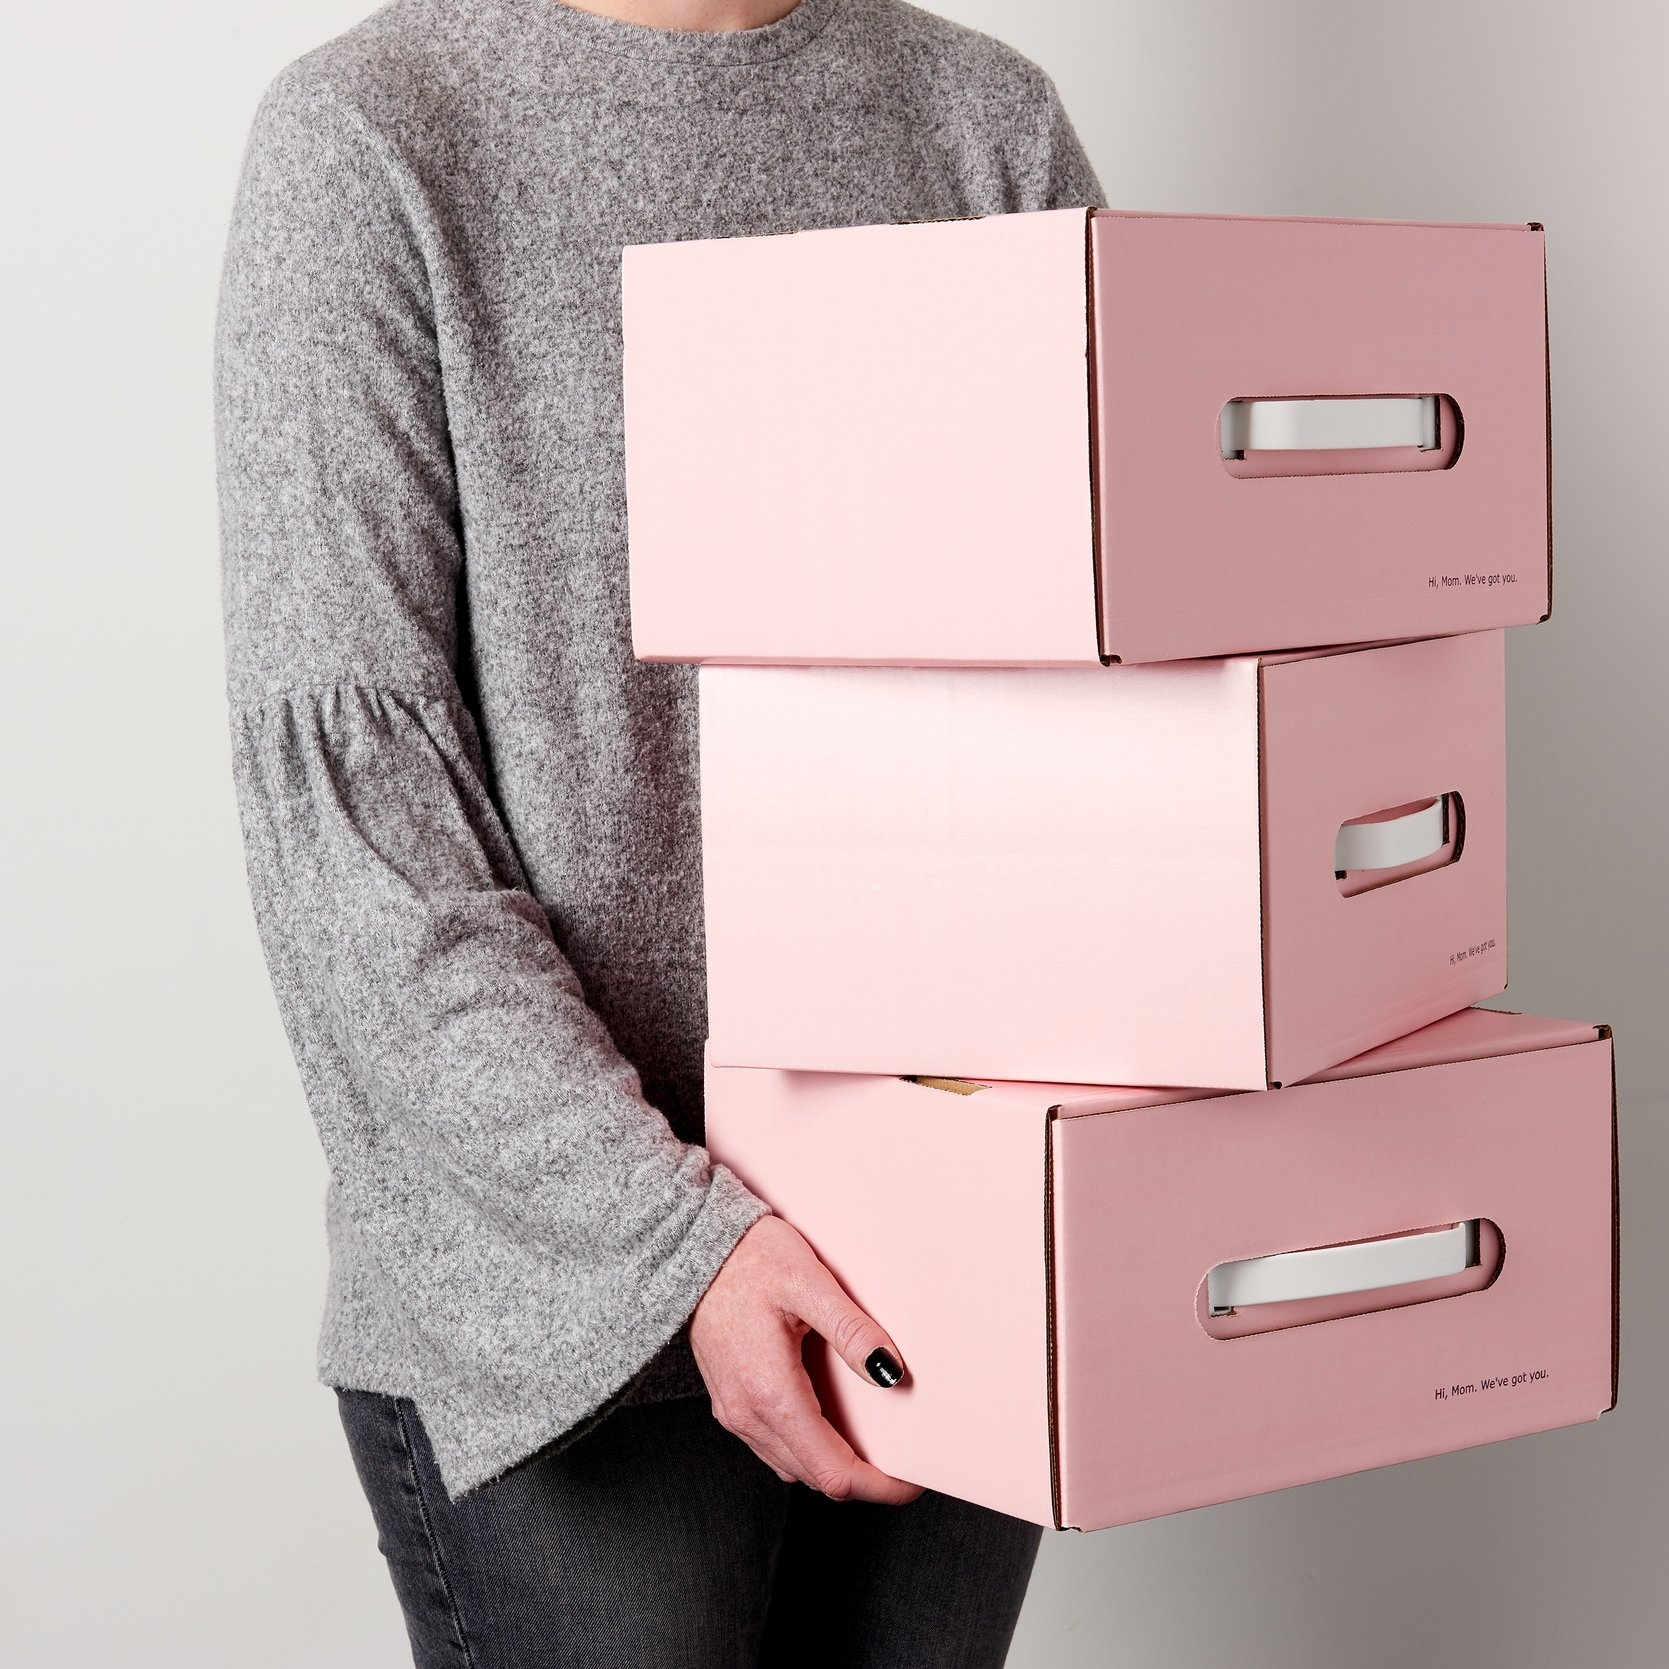 MomBox_Girl_Carrying_Boxes_05 copy.jpg